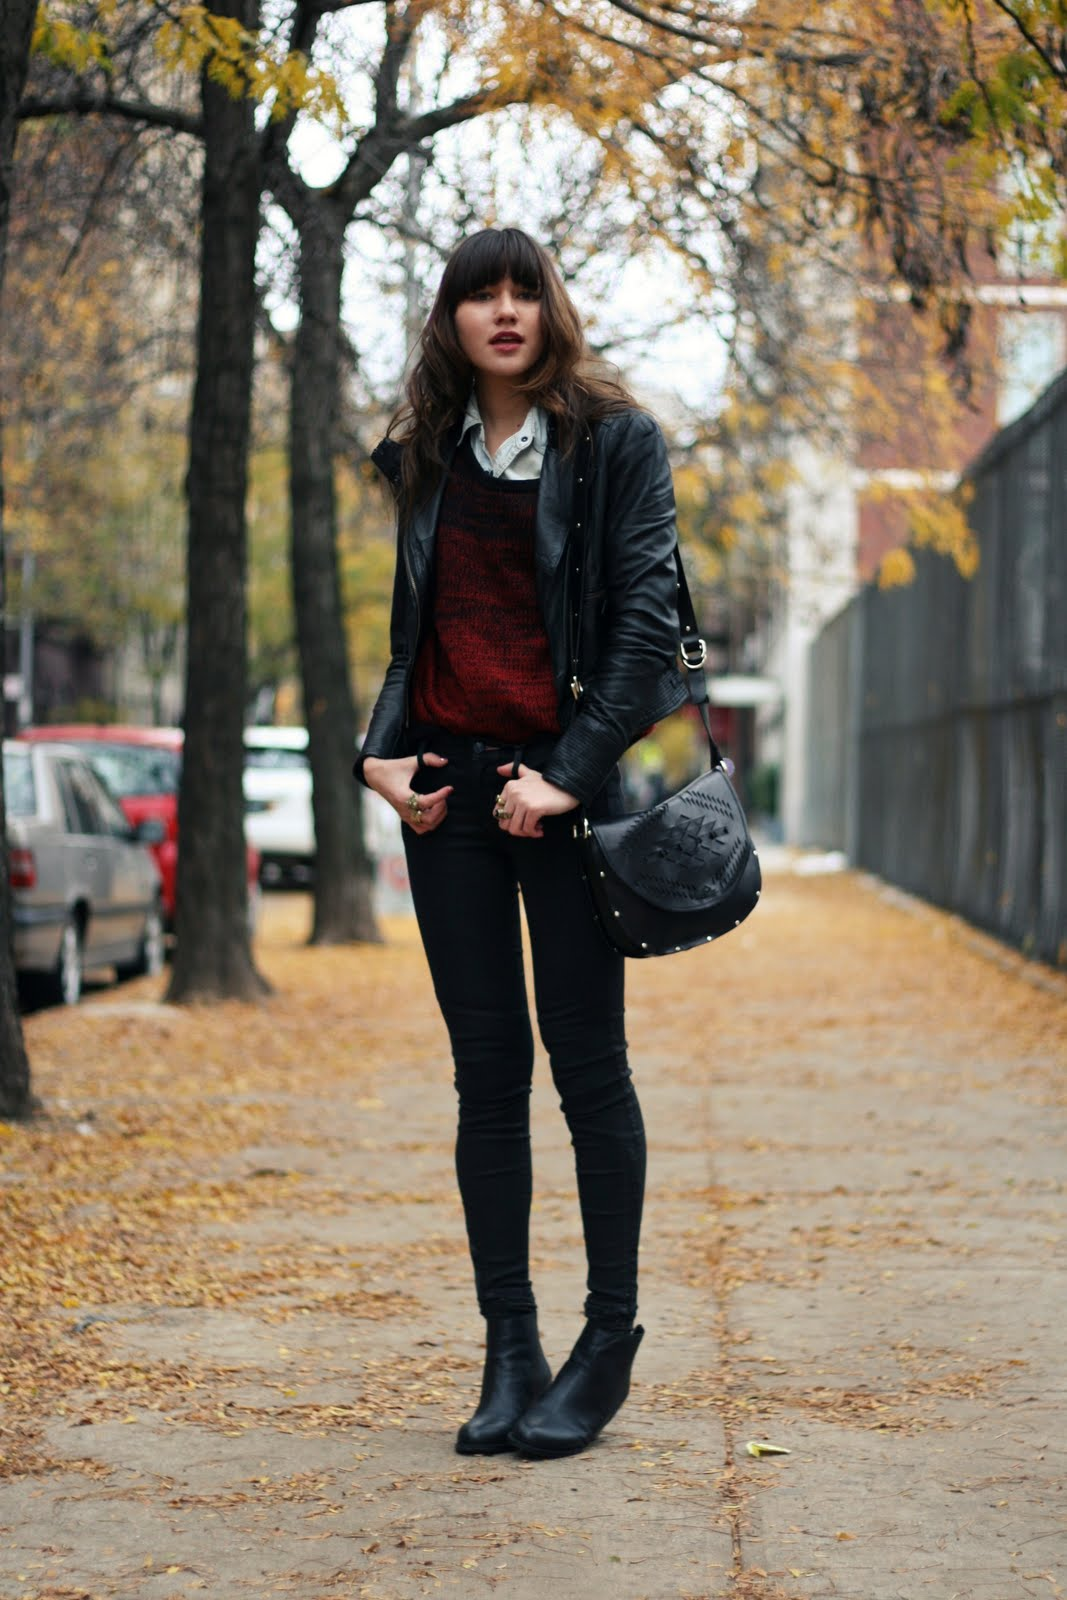 20 stylish ways to wear boots. The outfit possibilities with boots are endless and with this boot guide you'll see how to wear boots year round. For an ultra cool fall look wear black over-the-knee boots with a black leather jacket and black skinny jeans. To soften up the outfit add just a tad of white or a soft fabric like a knit. I wore a.